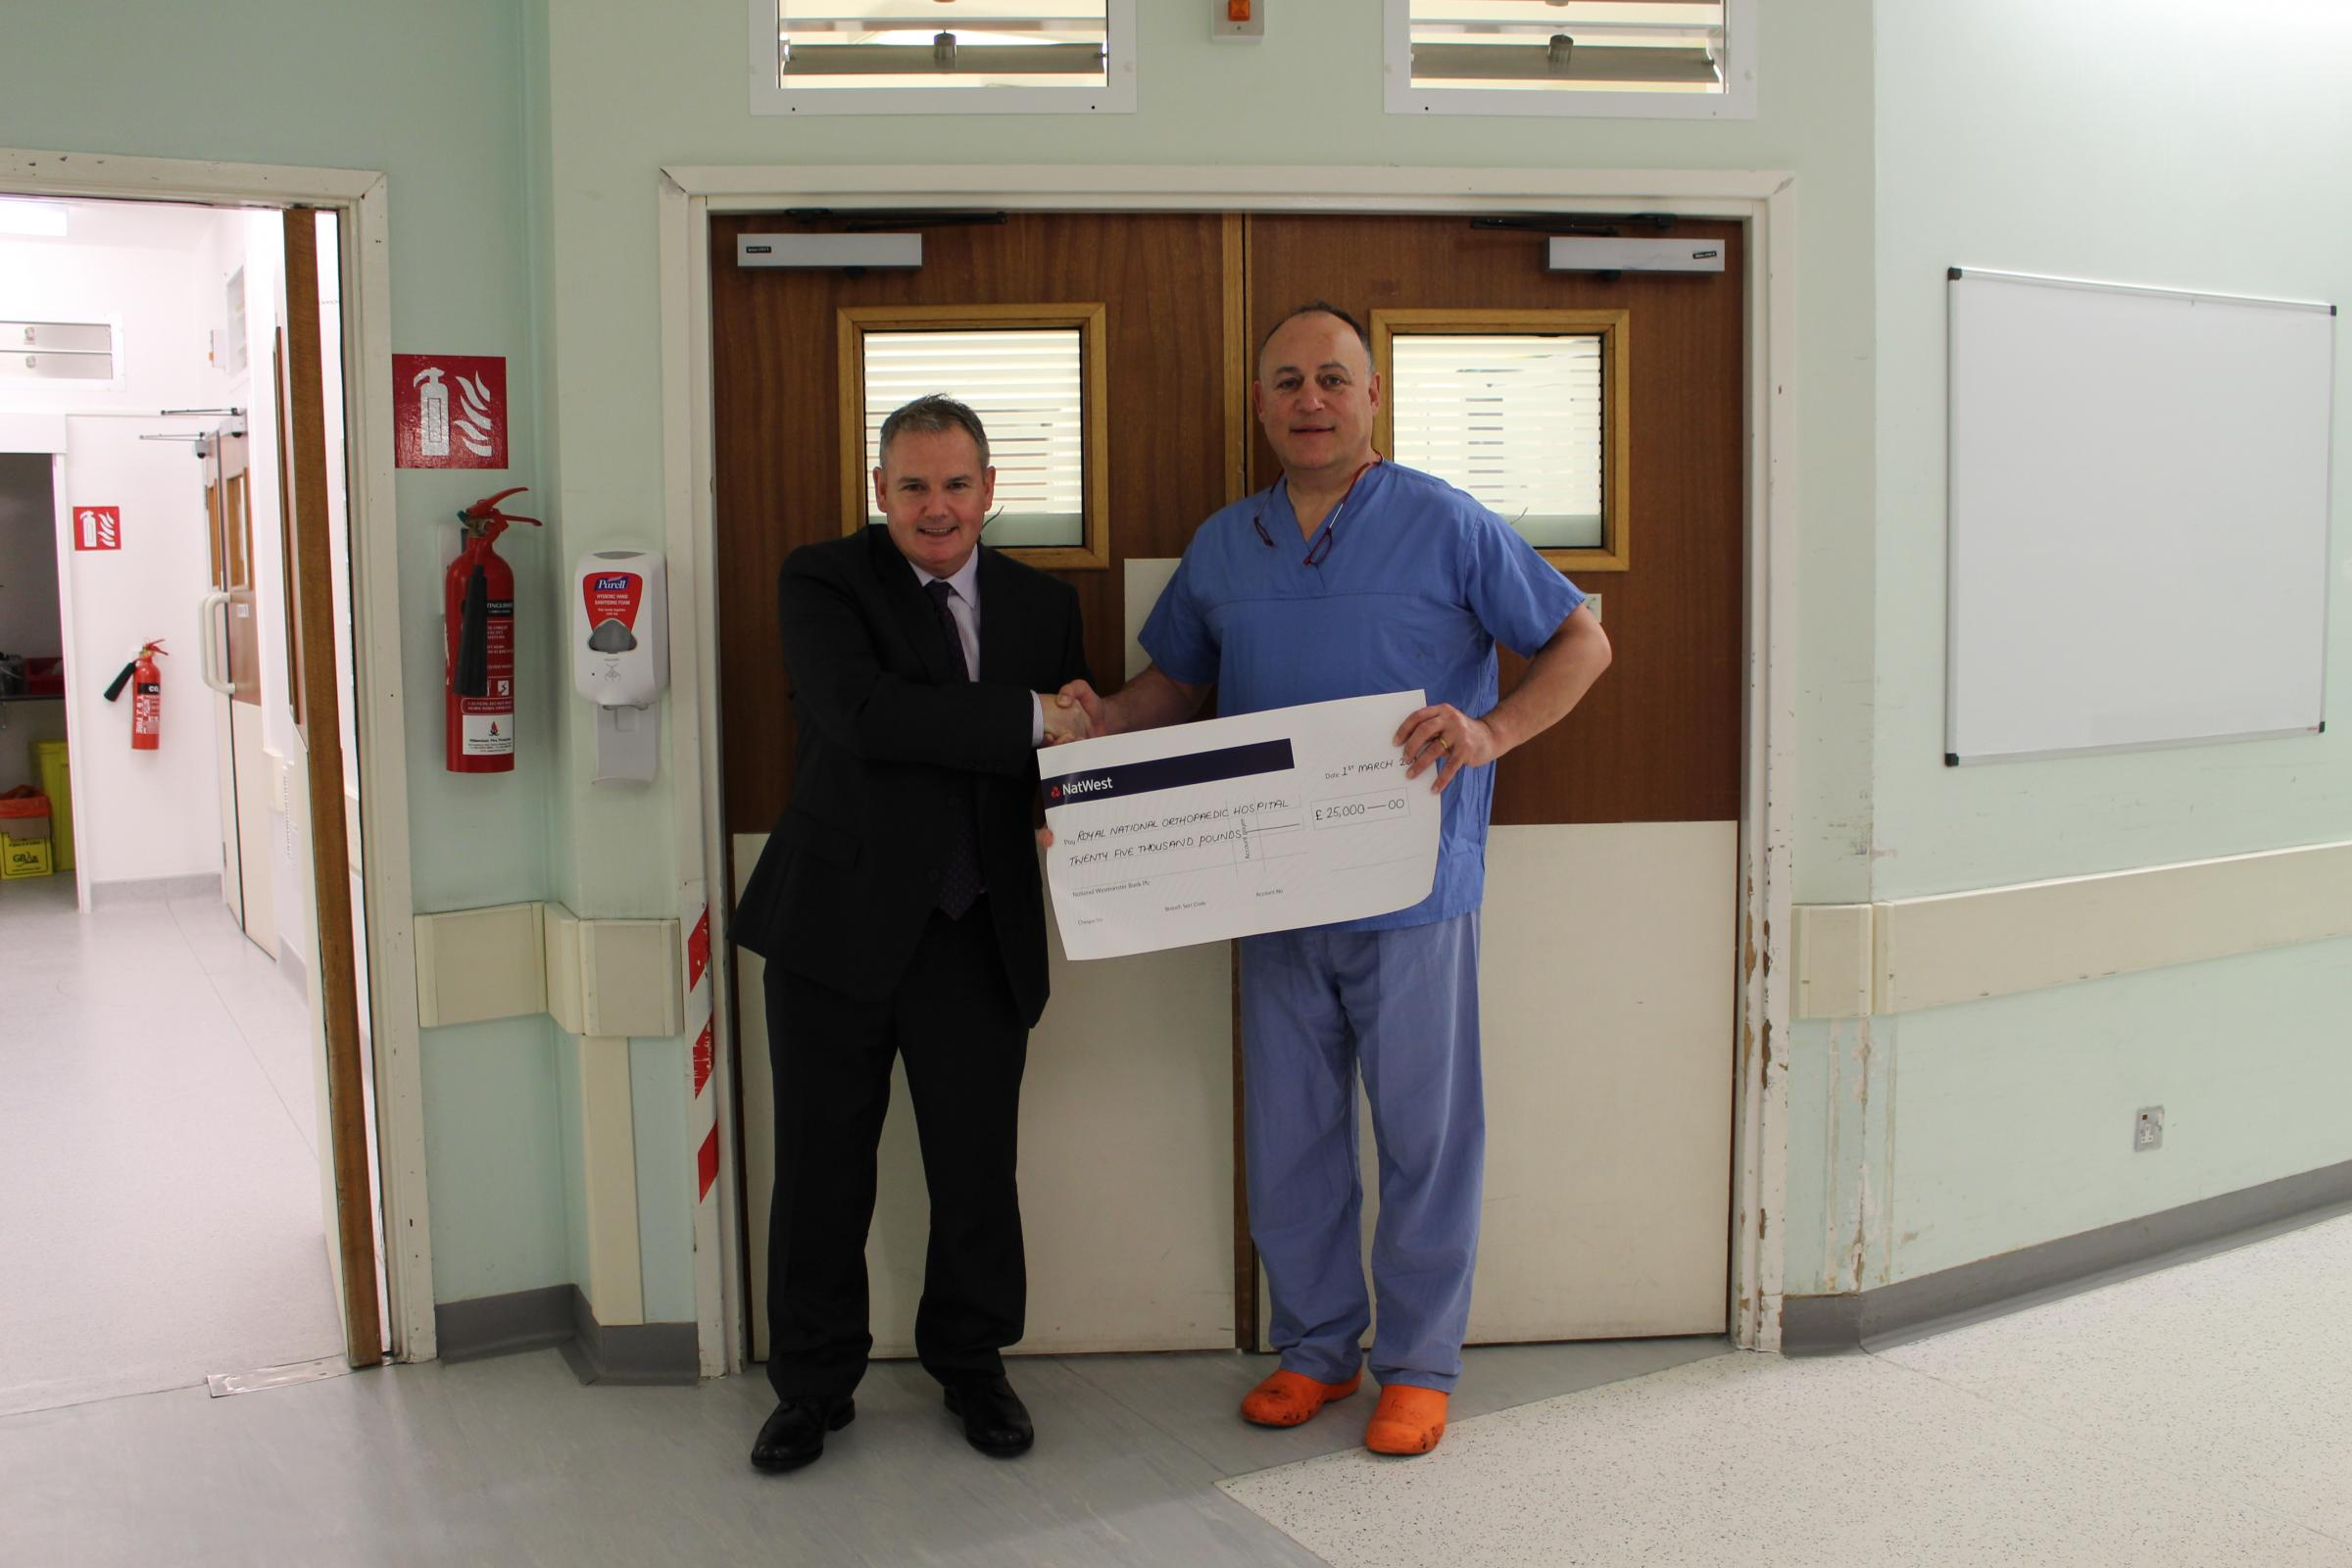 Declan Kelly presented a cheque worth £25,000 to Professor Tim Briggs of the  Royal National Orthopaedic Hospital